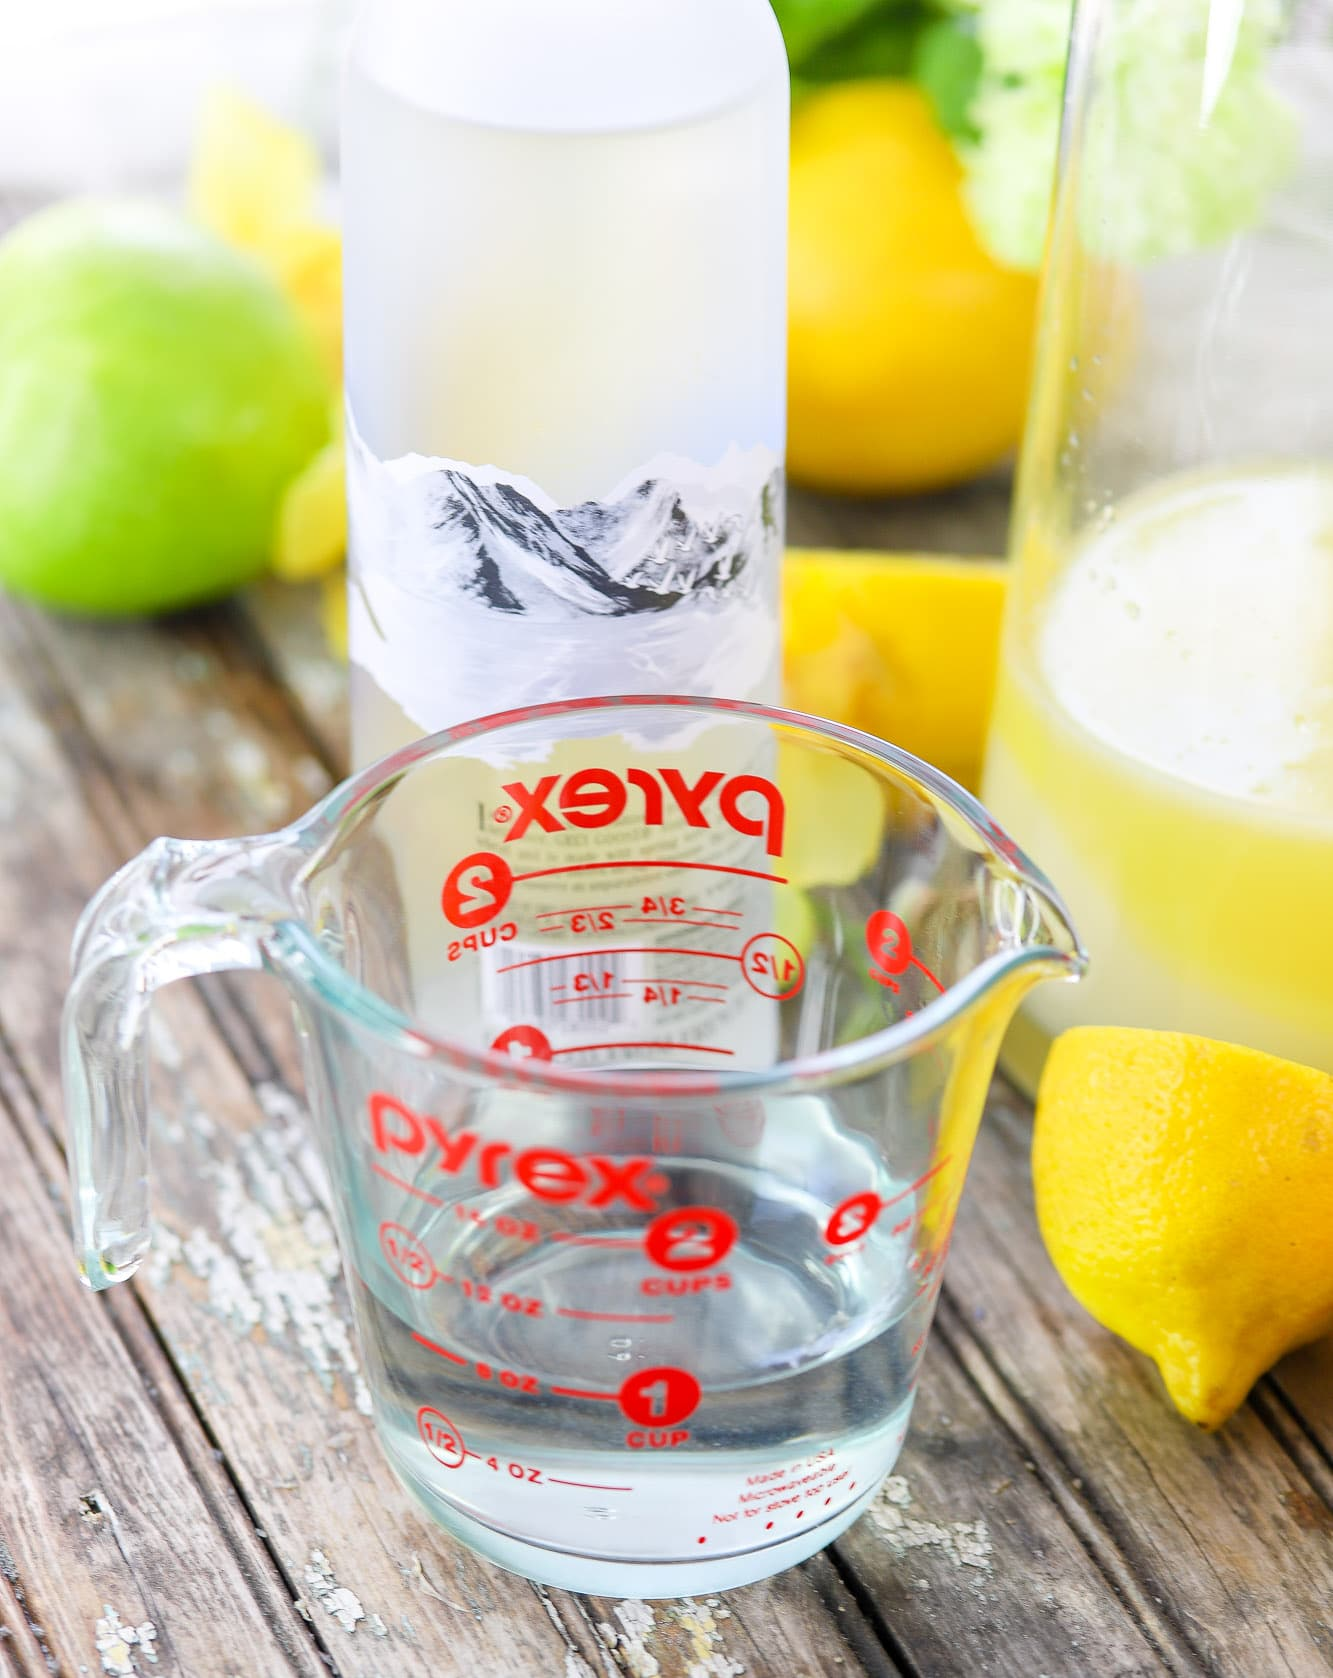 apple flavored vodka in a measuring cup with vodka bottle, lemons, and apples in background